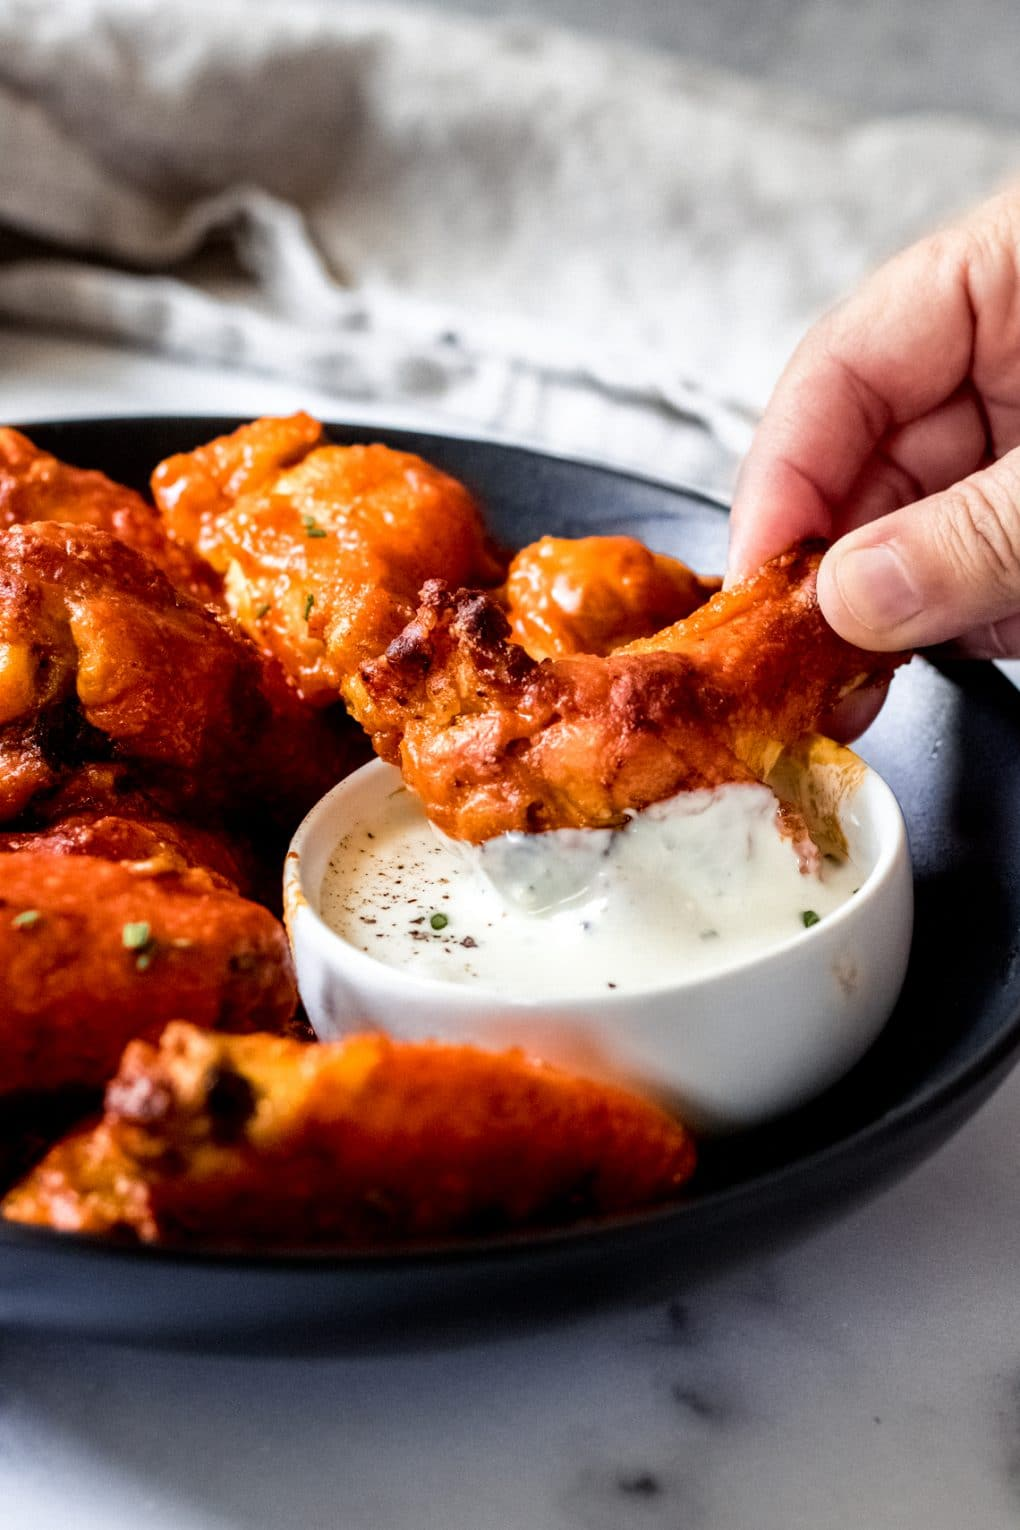 someone dipping a wing into blue cheese dressing